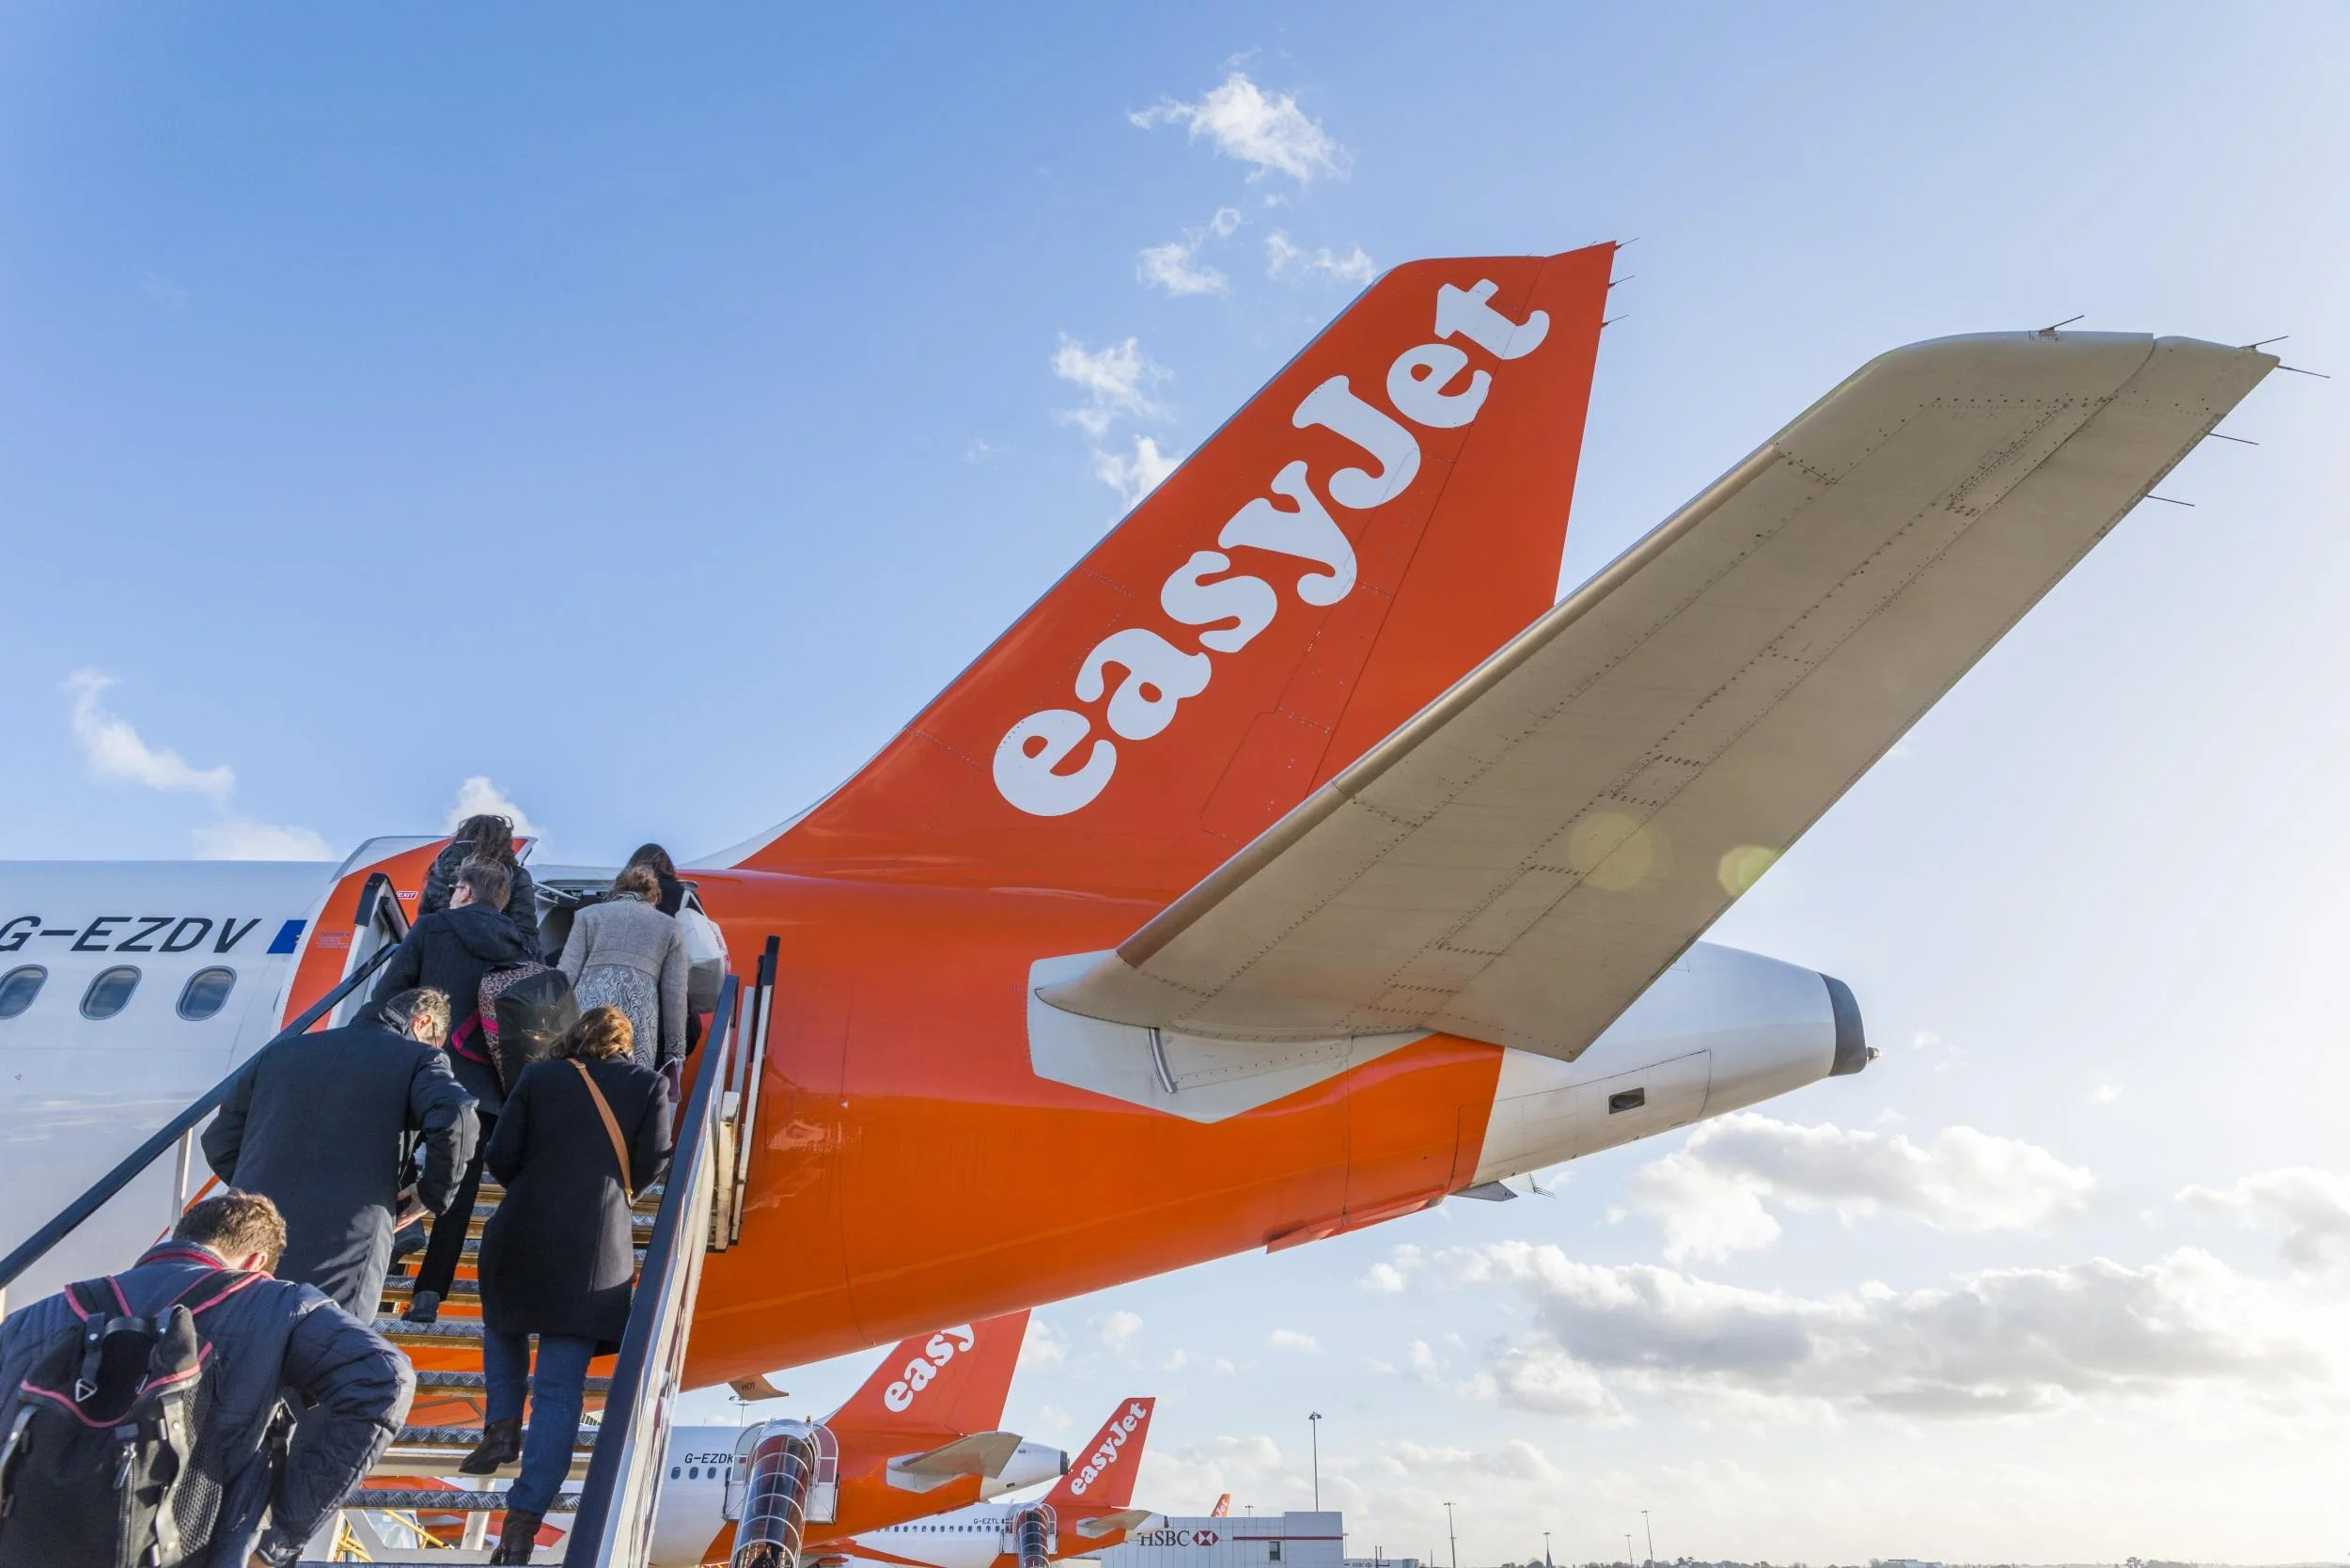 The woman embarks on the easyJet flight using the child's passport